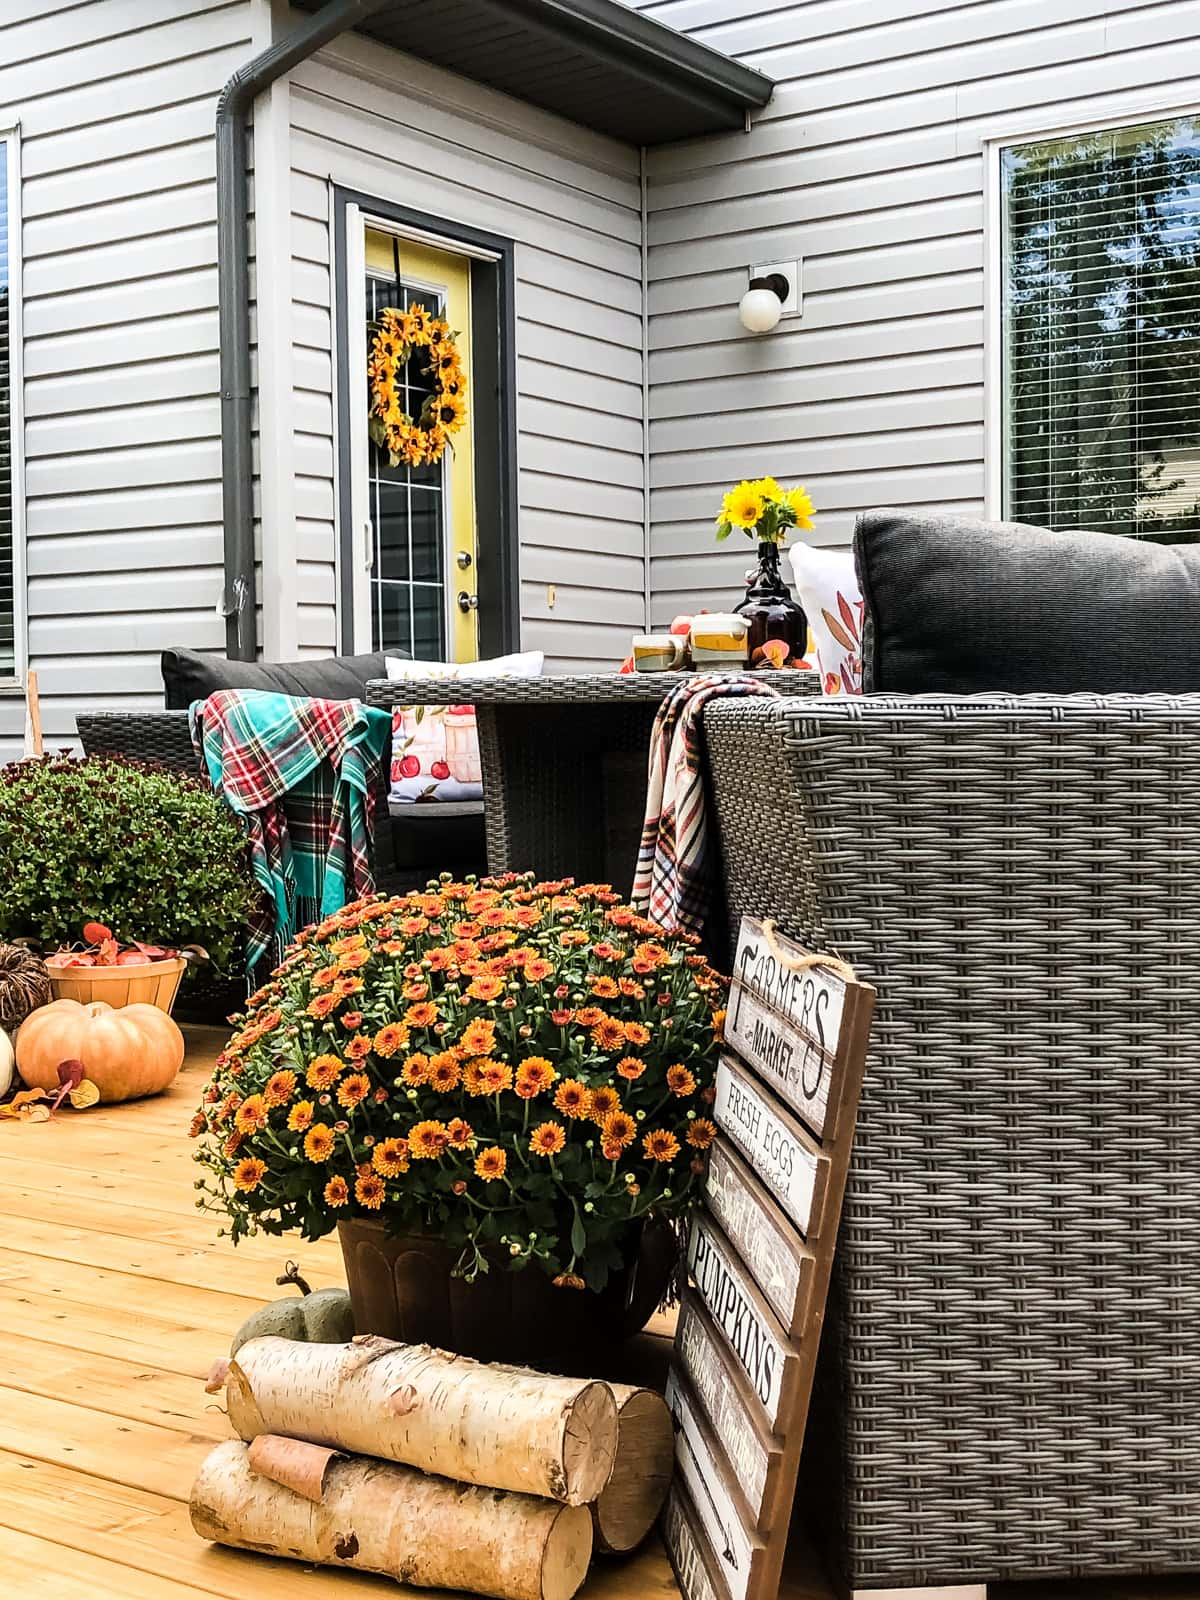 An outdoor deck decorated for fall with pumpkins, candles, mums, blankets and pillows